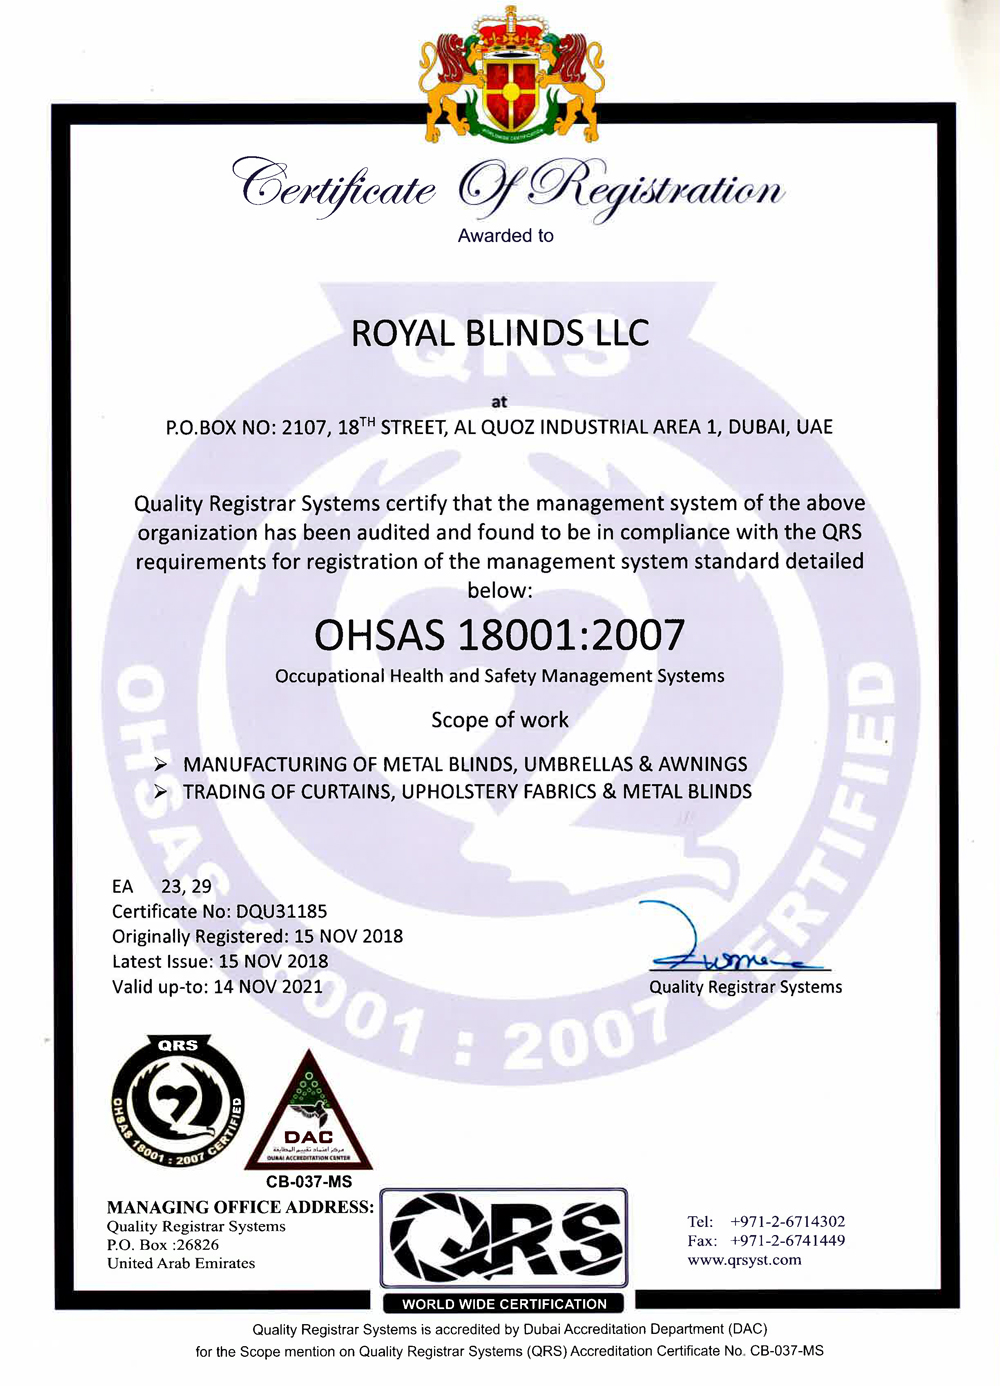 Royal Blinds Certification